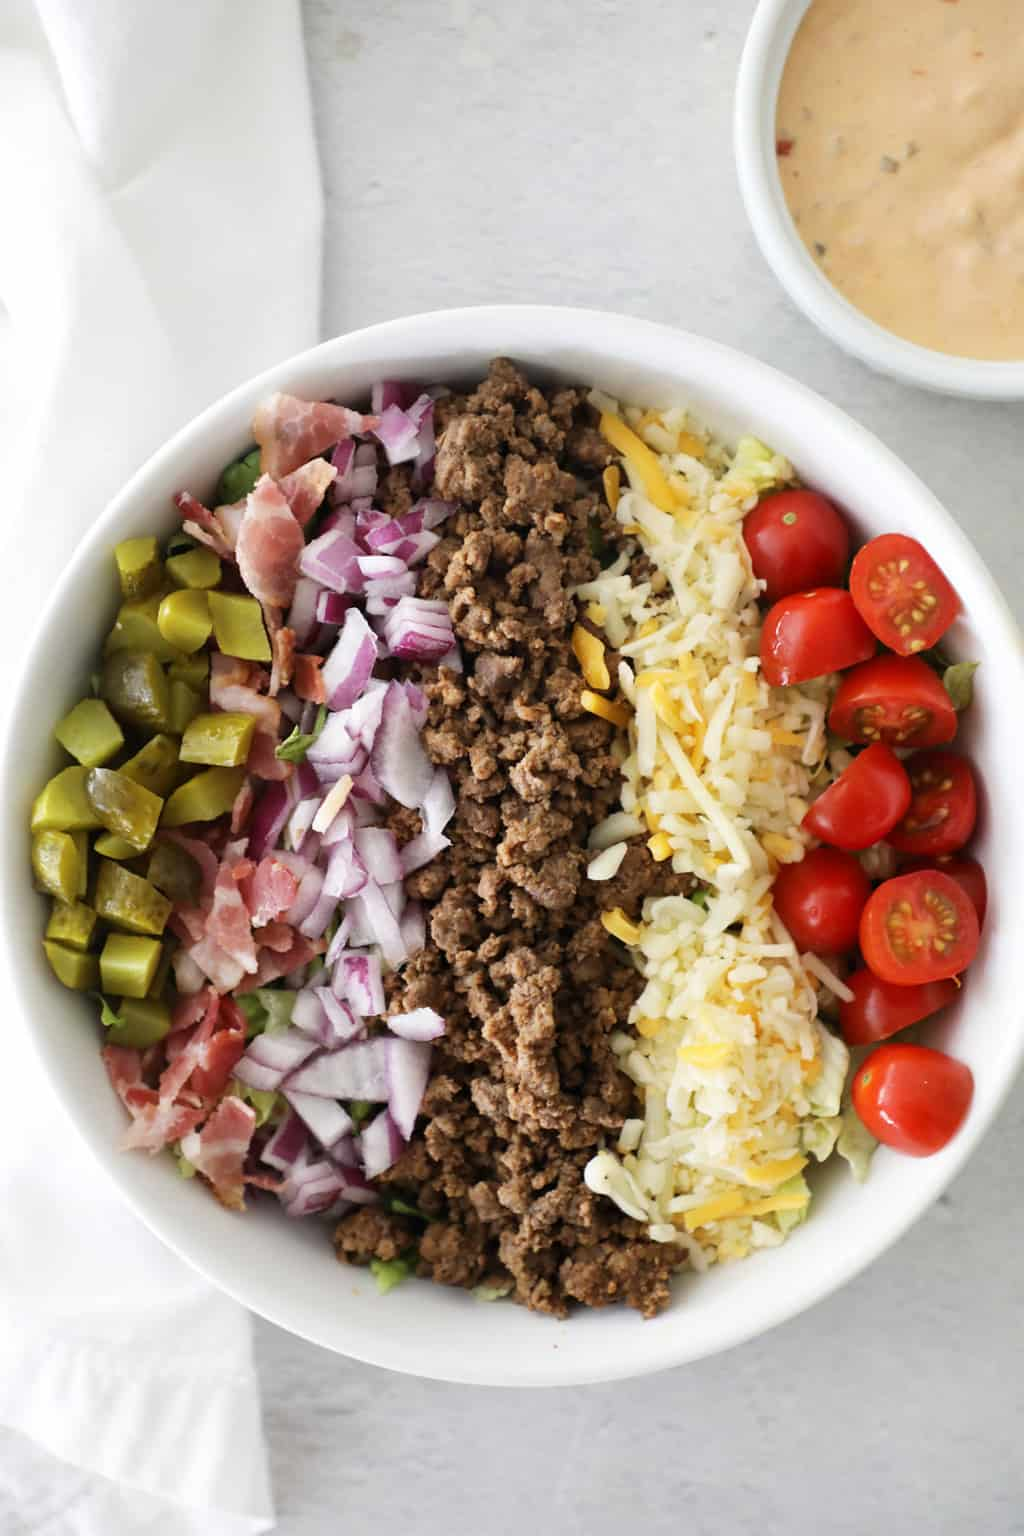 all the ingredients of a cheeseburger chopped small and covering lettuce in a white bowl